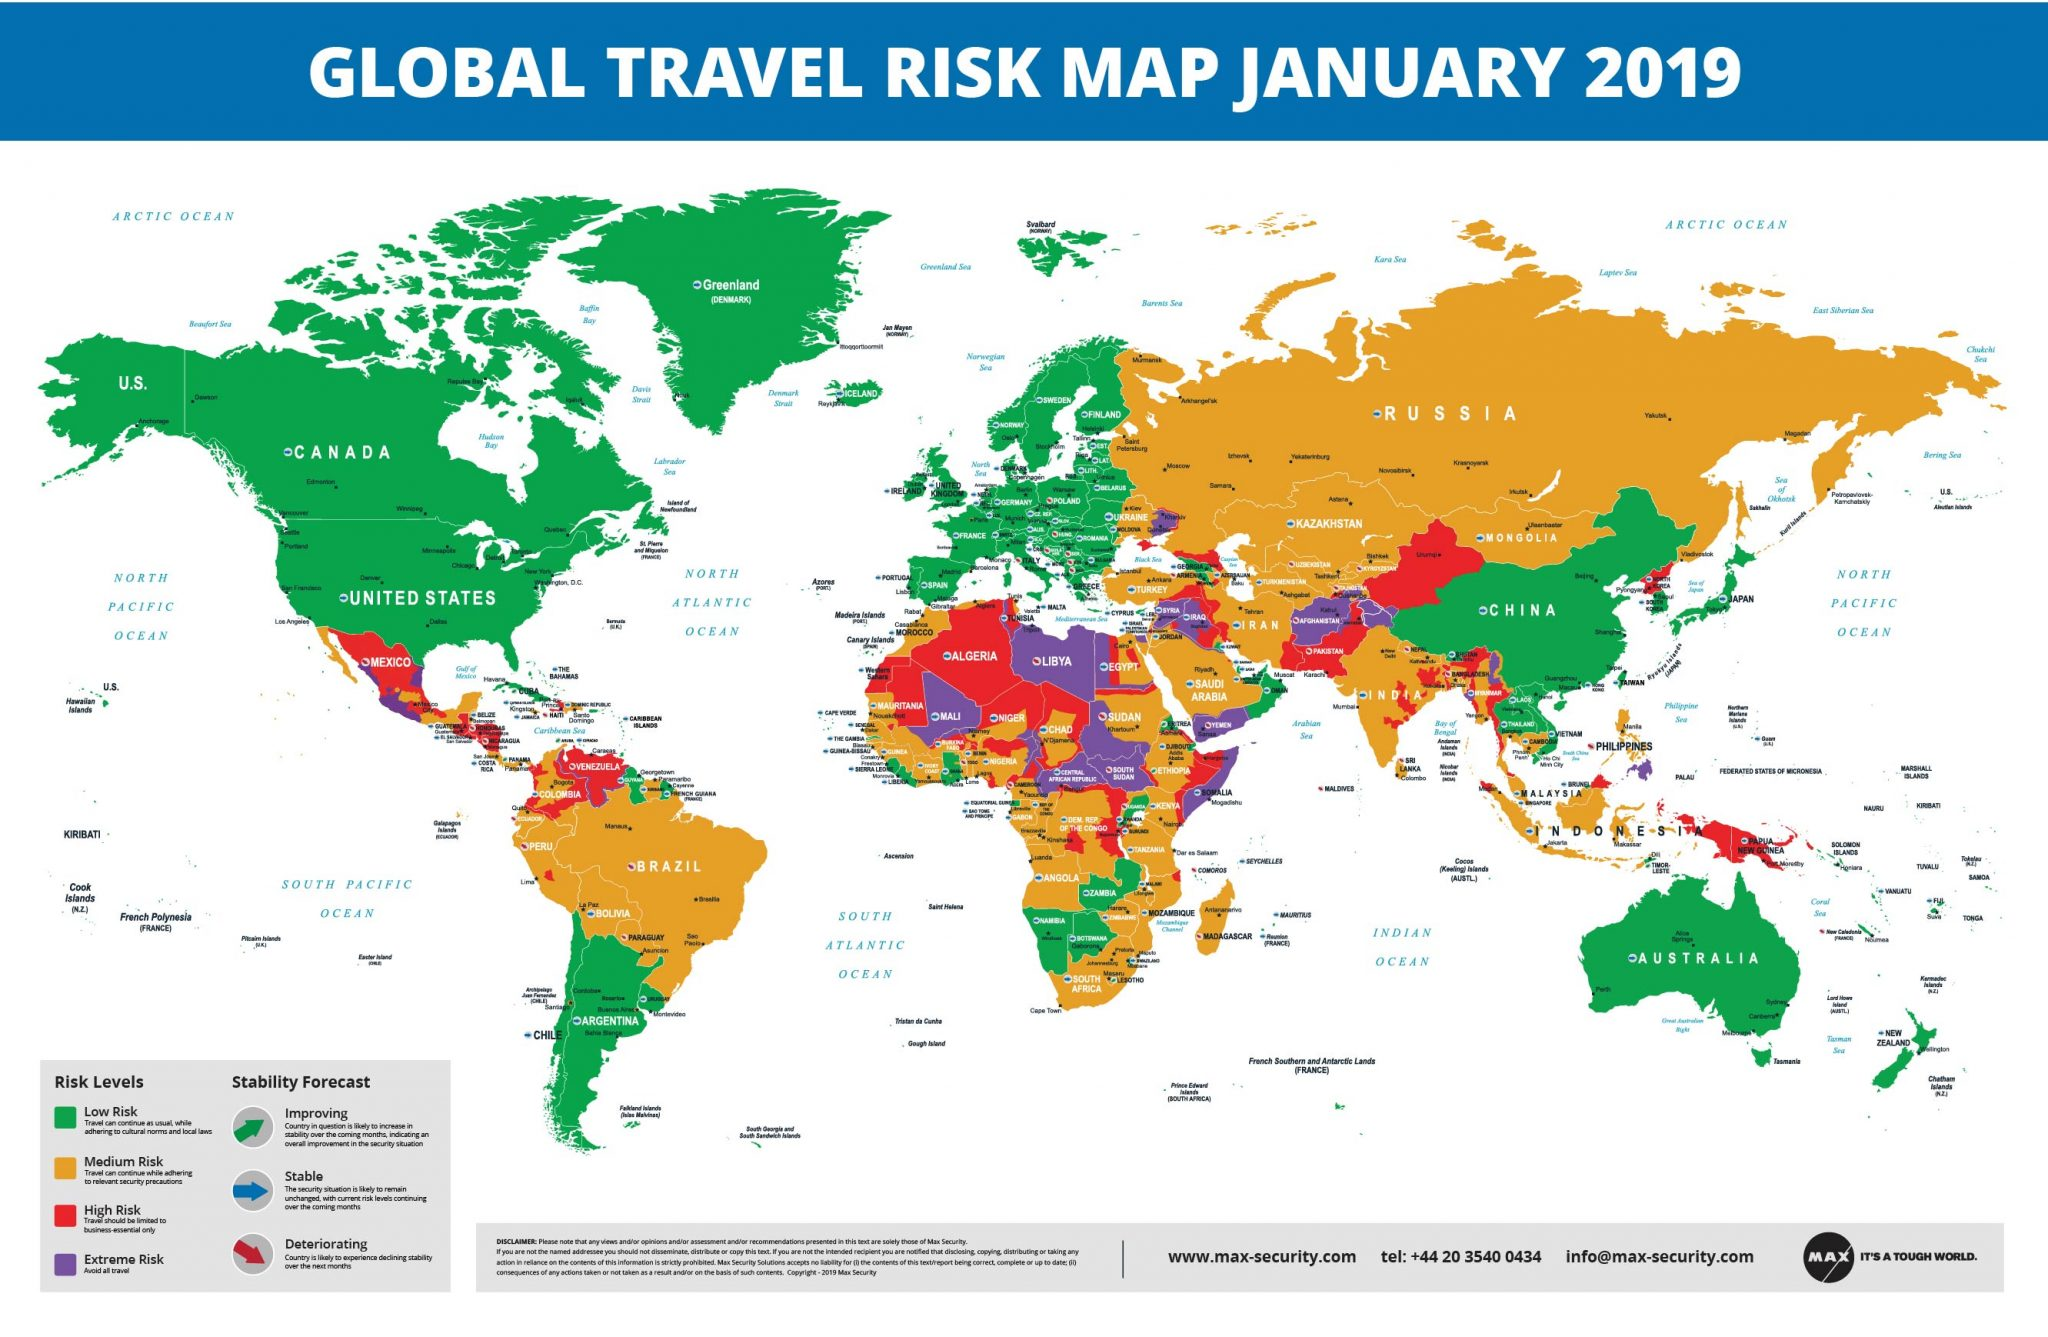 Global Travel Risk Map_January 2019